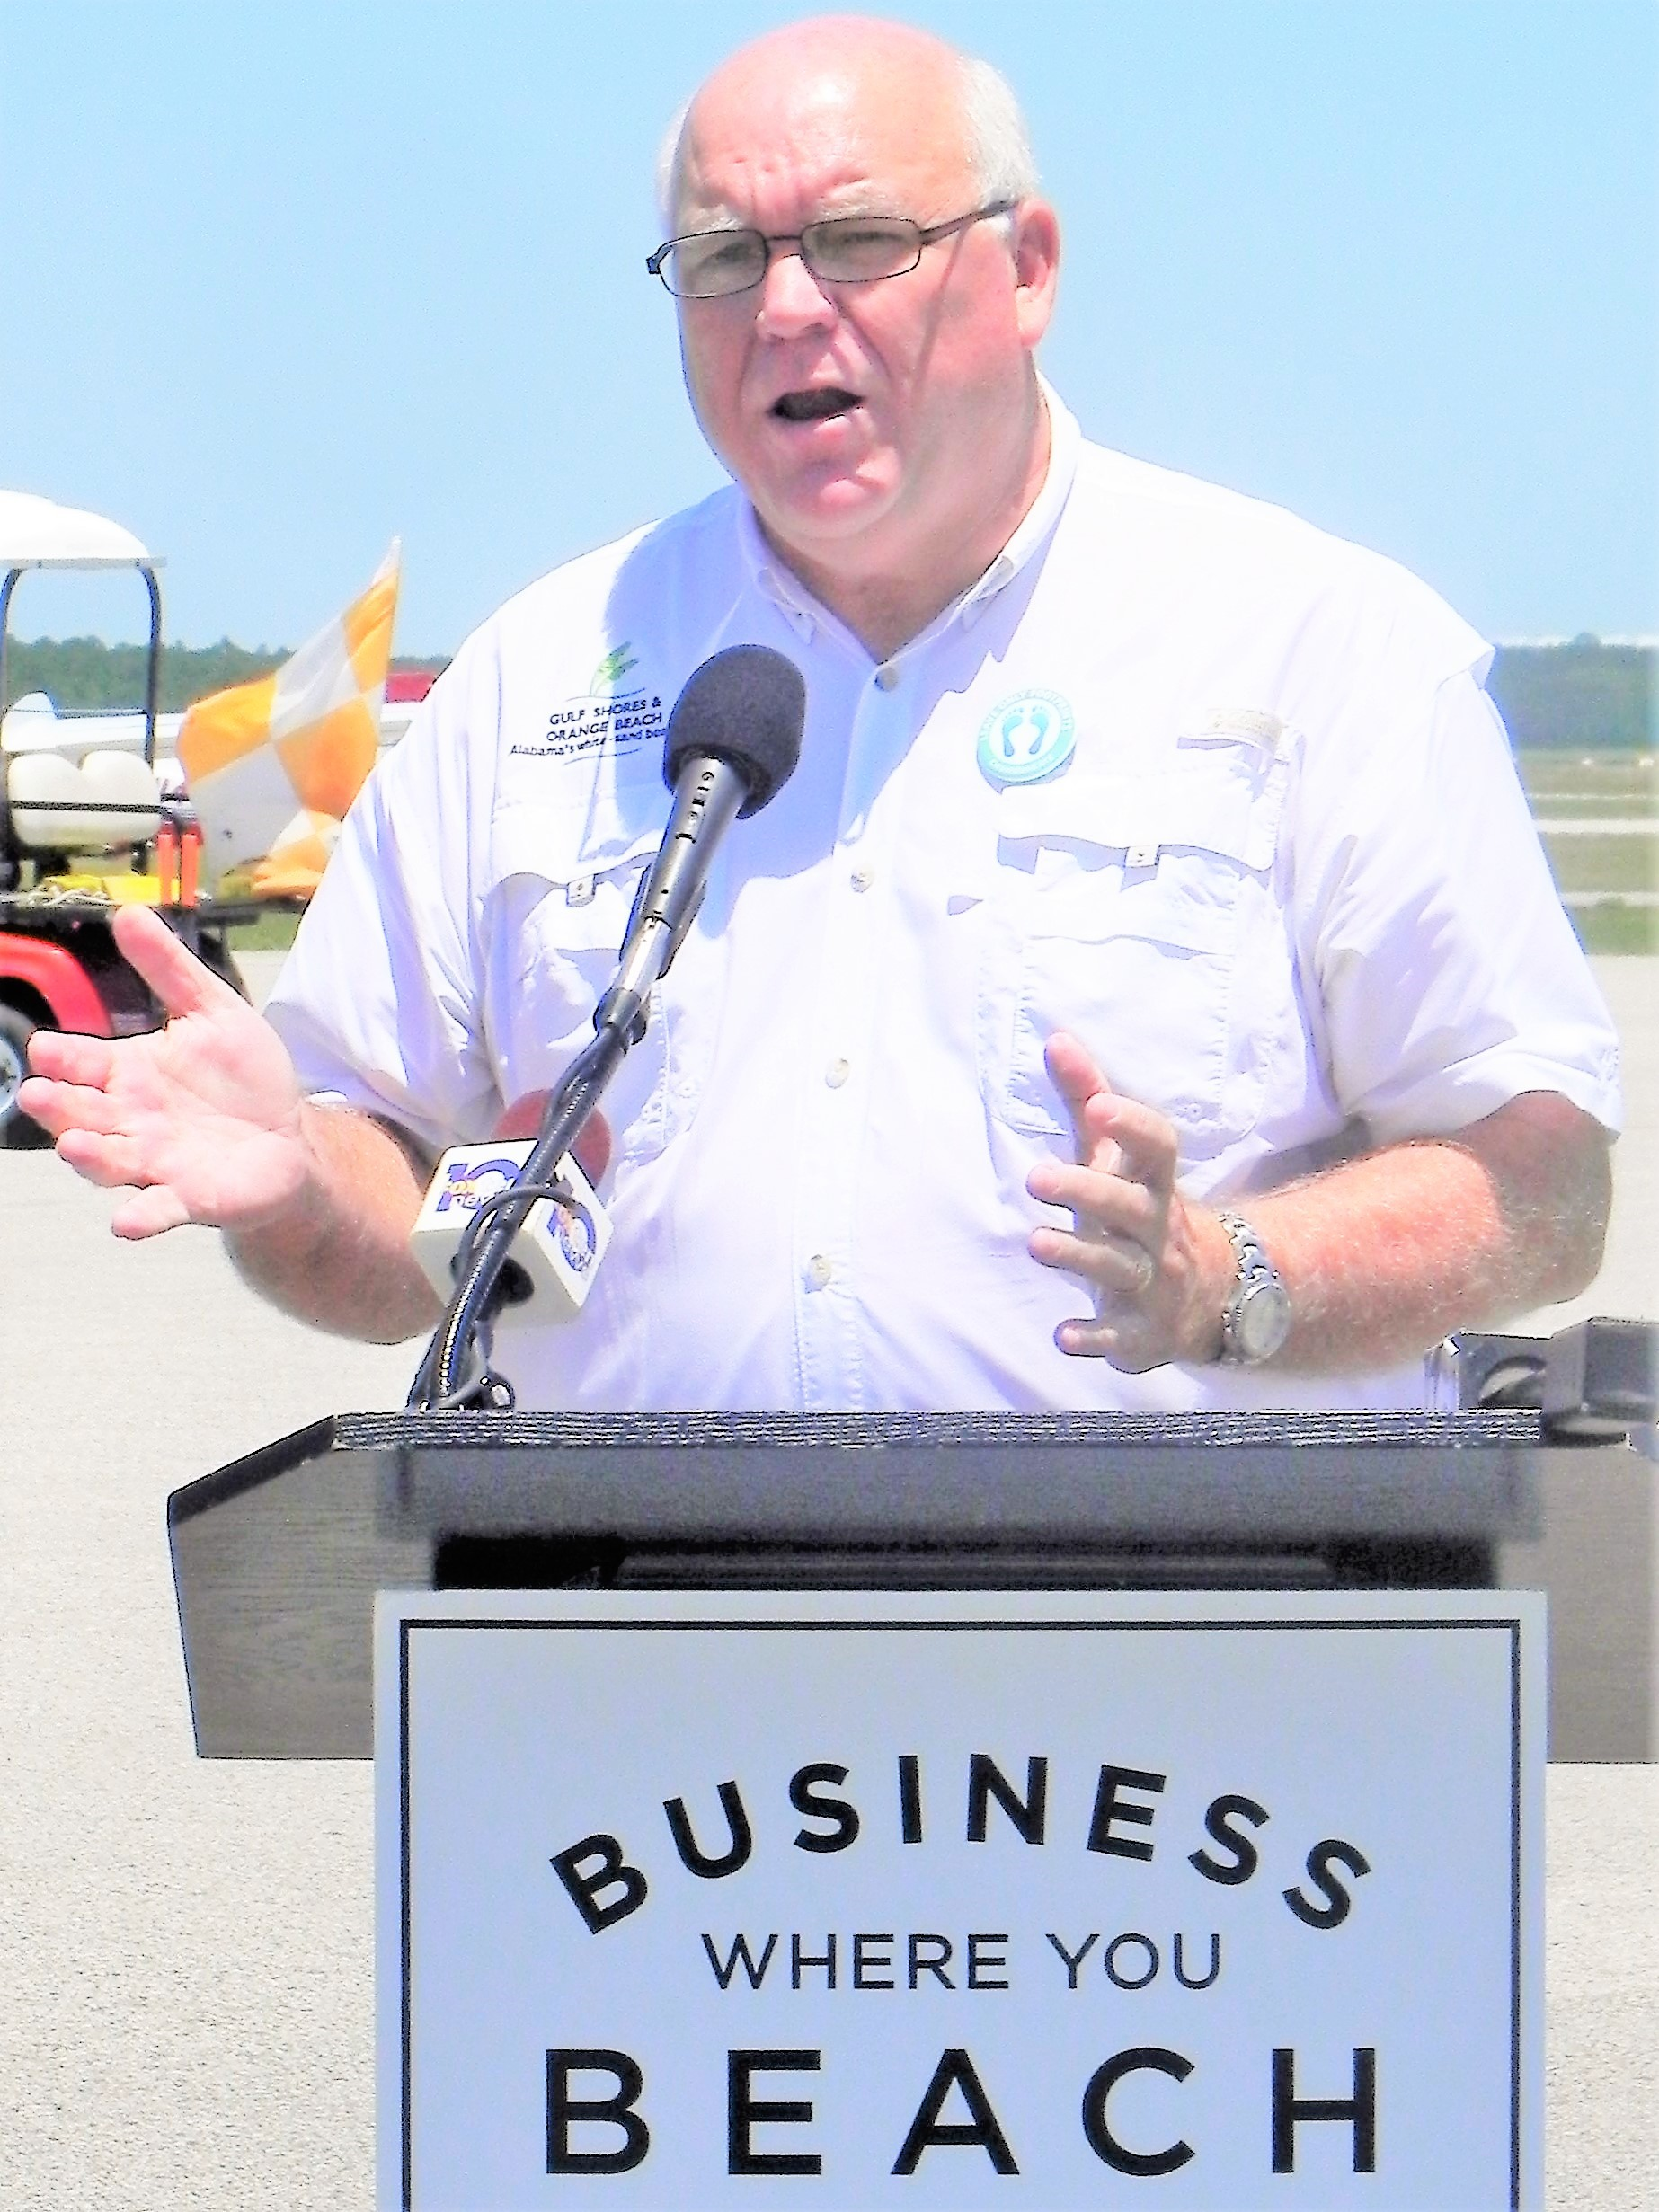 Herb Malone of Gulf Shores and Orange Beach Tourism.